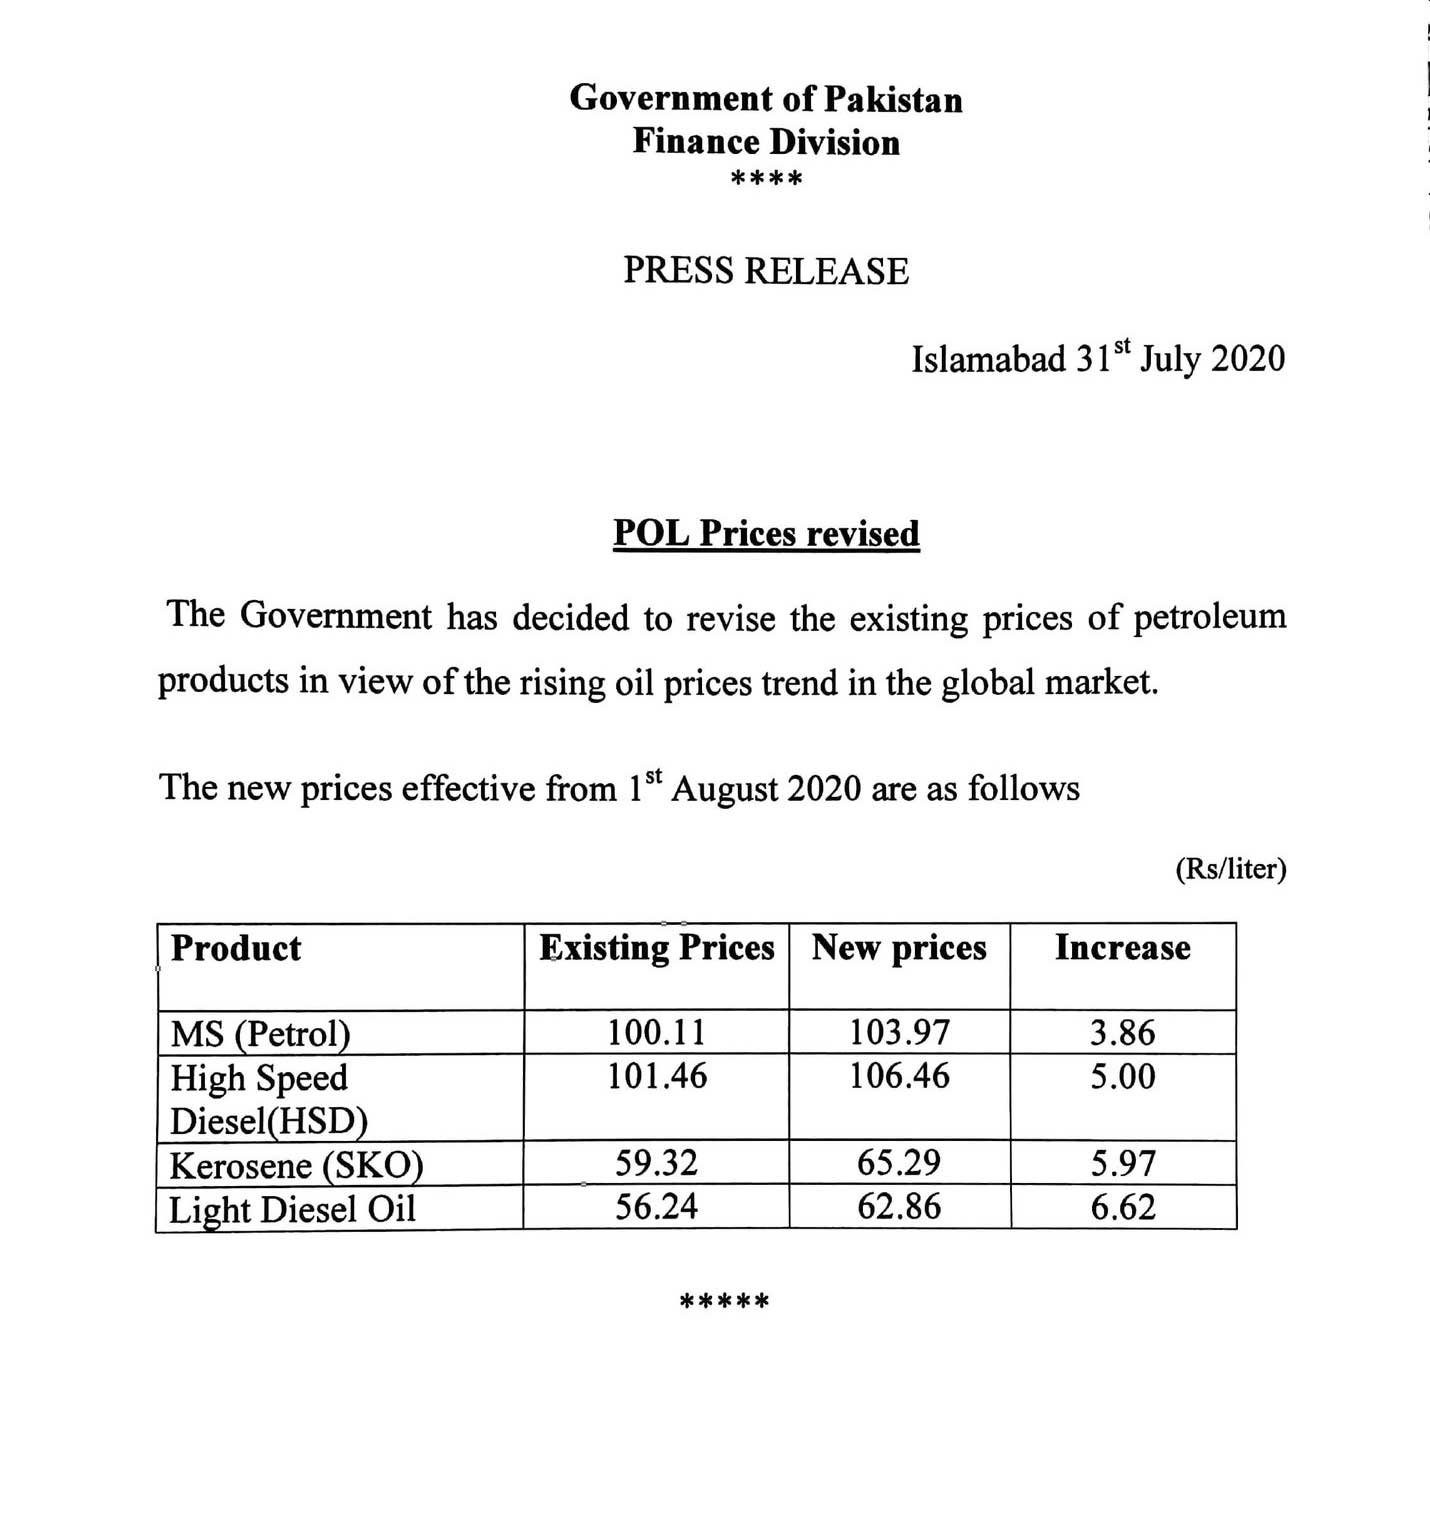 Petrol Price Increased by Rs3.86